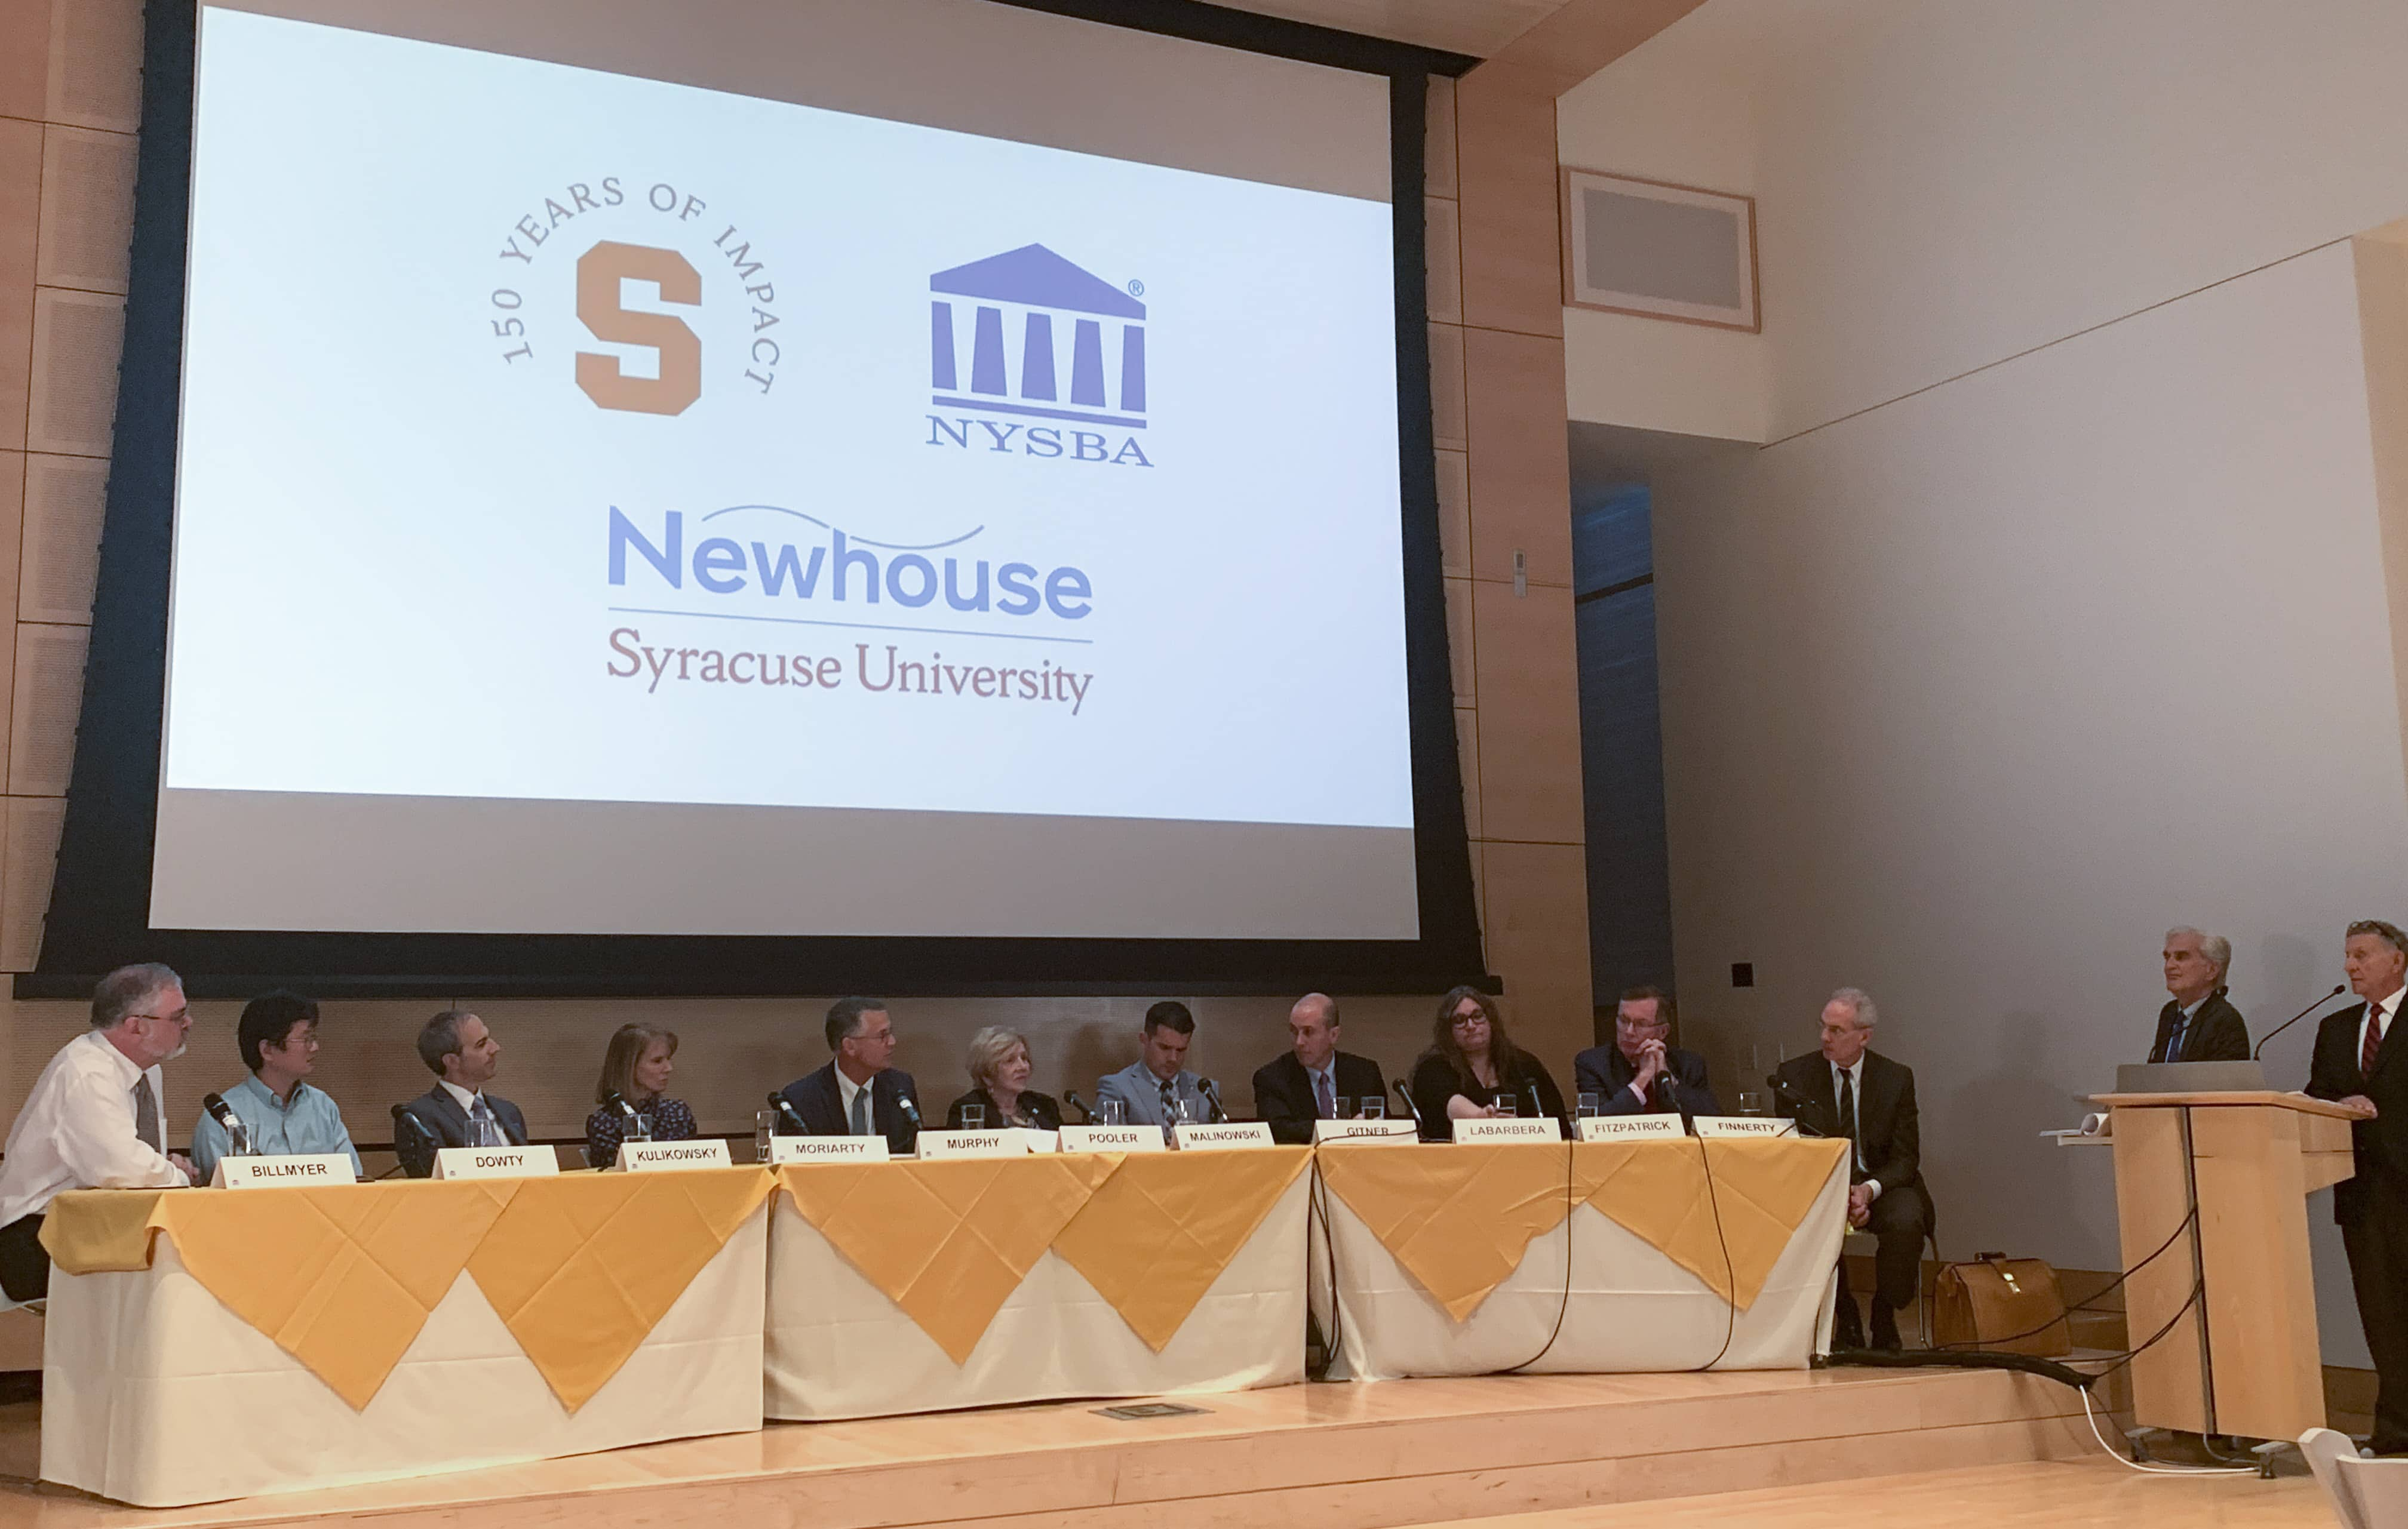 Journalists and lawyers discussed a hypothetical exploring issues involving the media, law enforcement, lawyers and the courts, with participation by an experienced panel and the audience at the New York Fair Trial Free Press Conference 2019 held at the Newhouse School.